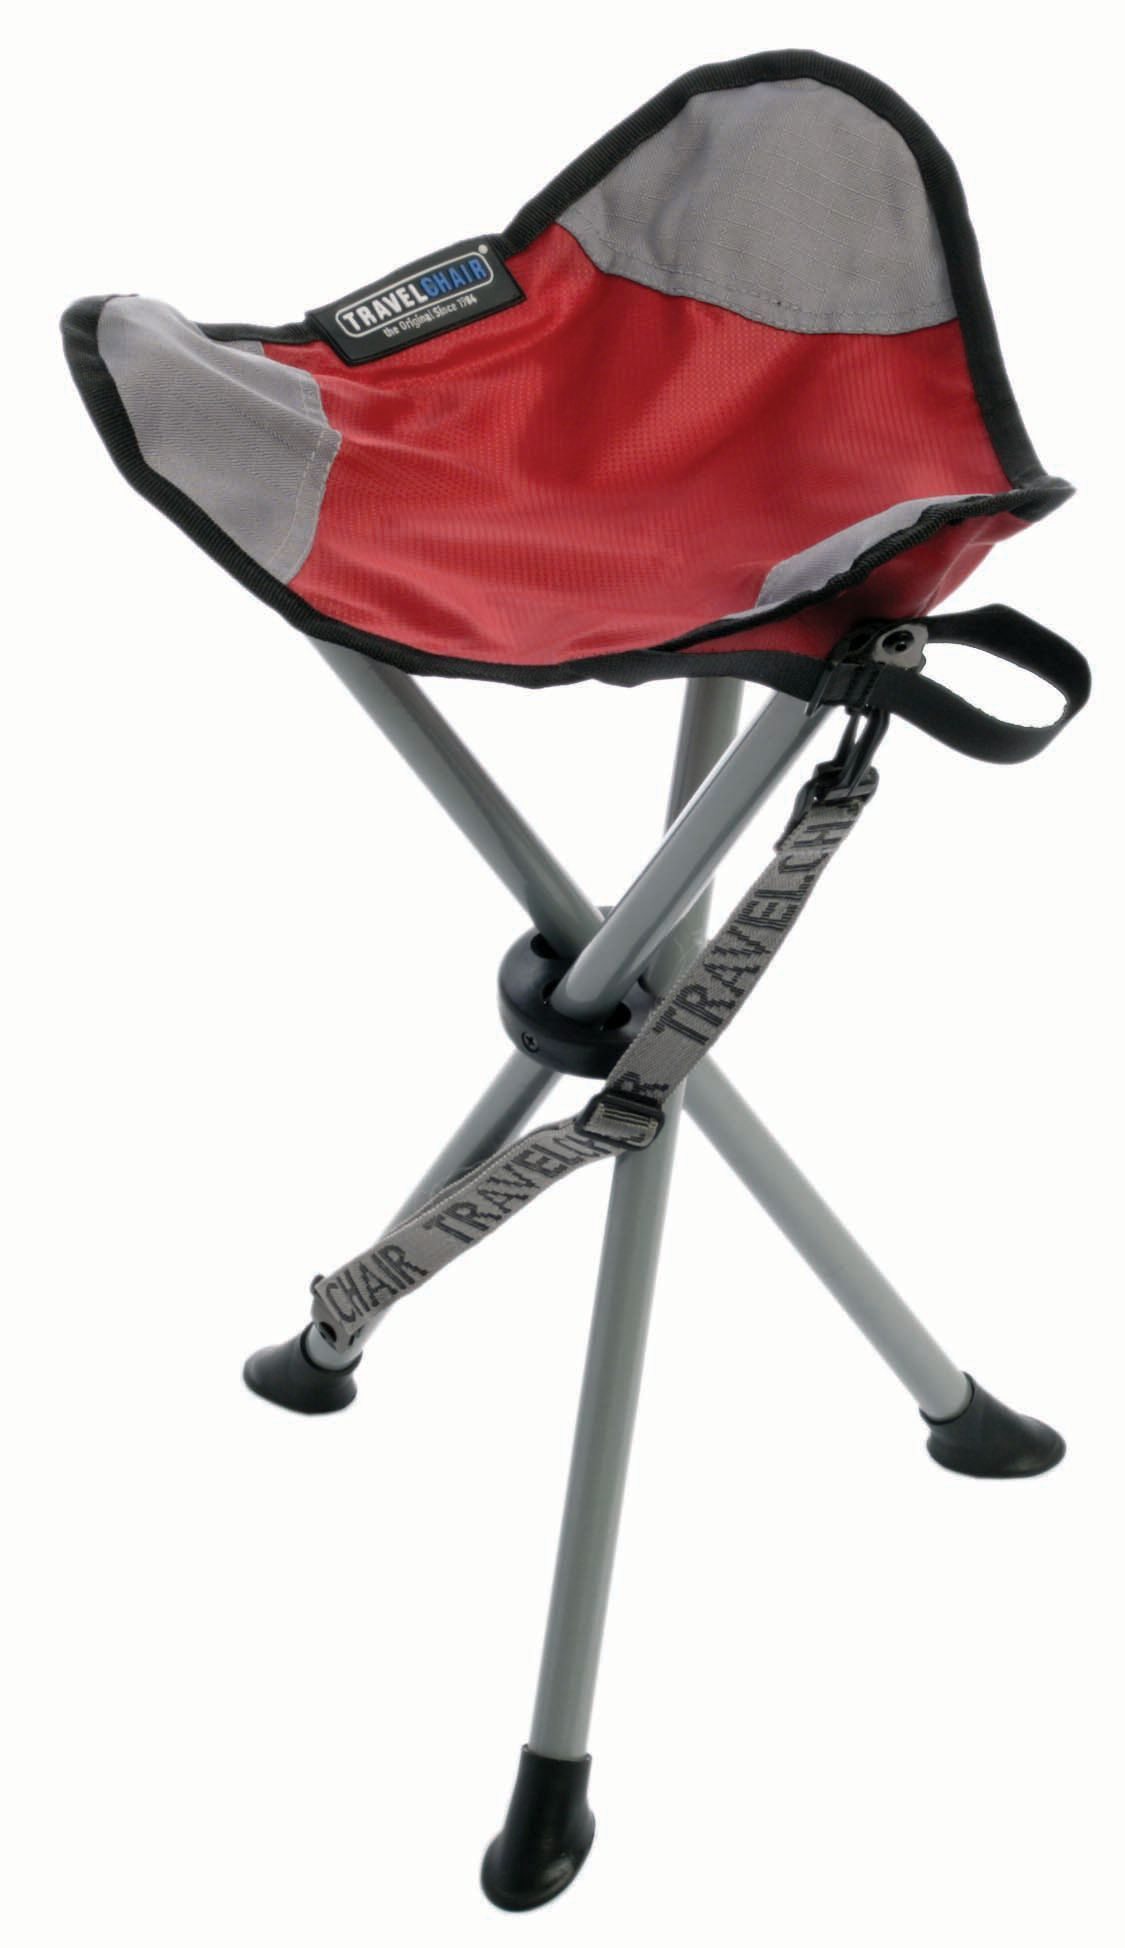 Travelchair Slacker Stool Red Camping Chairs Camping